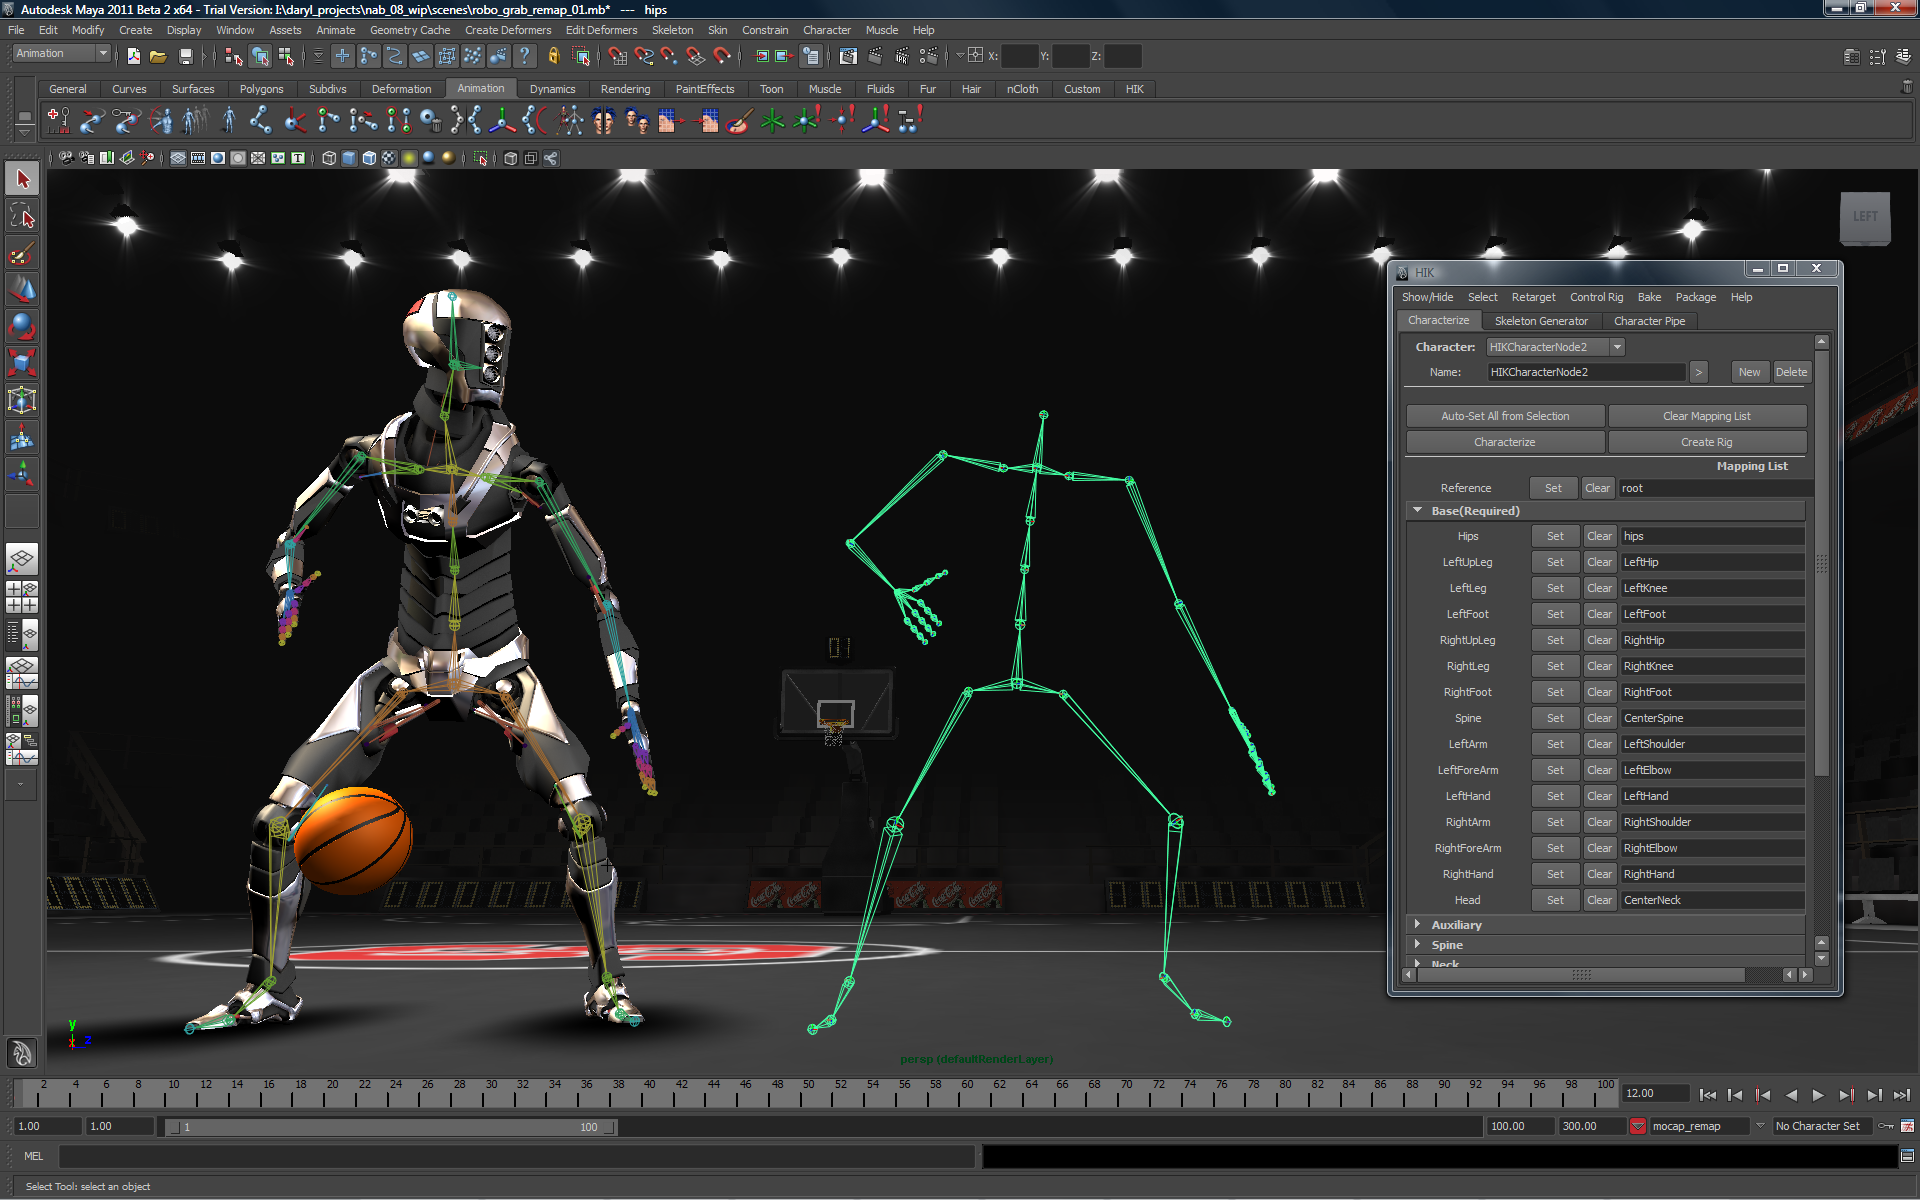 Autodesk gives away 25m in free 3d modeling software to for Online rendering tool